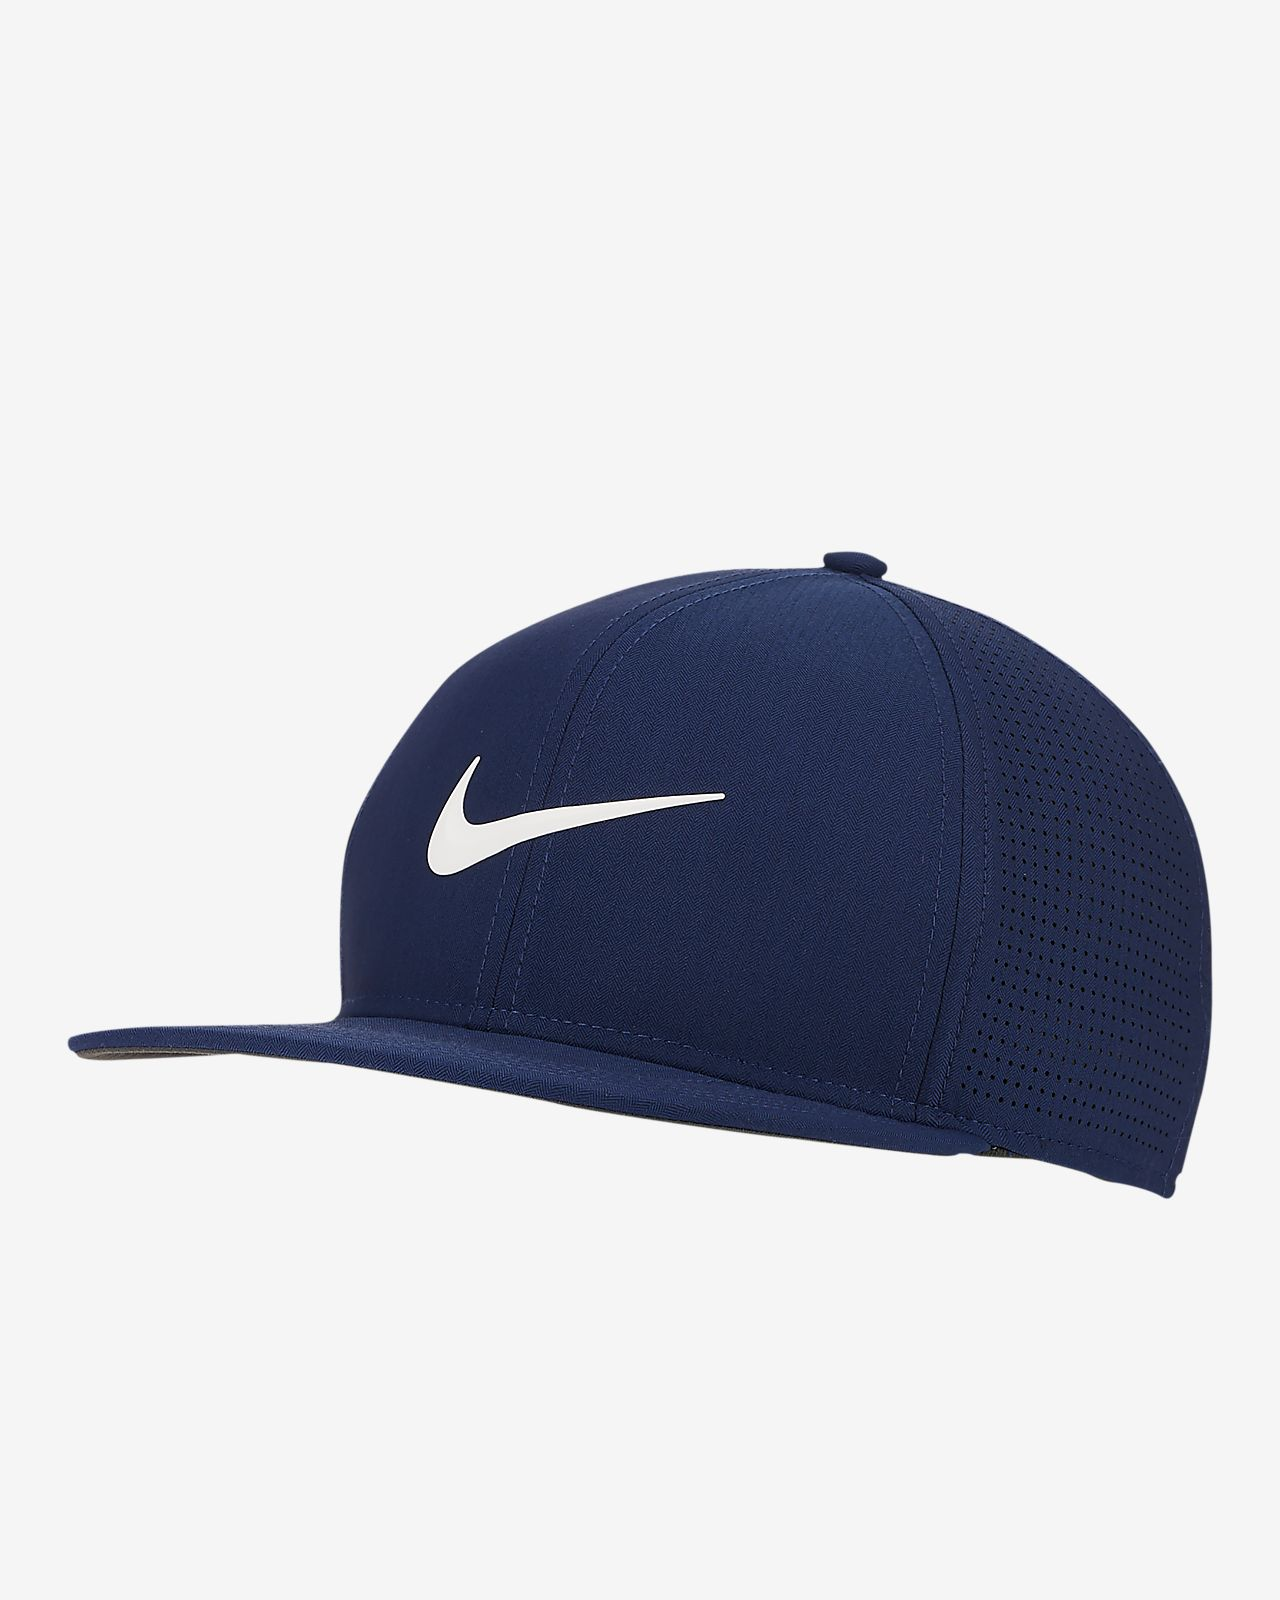 Nike AeroBill Adjustable Golf Hat